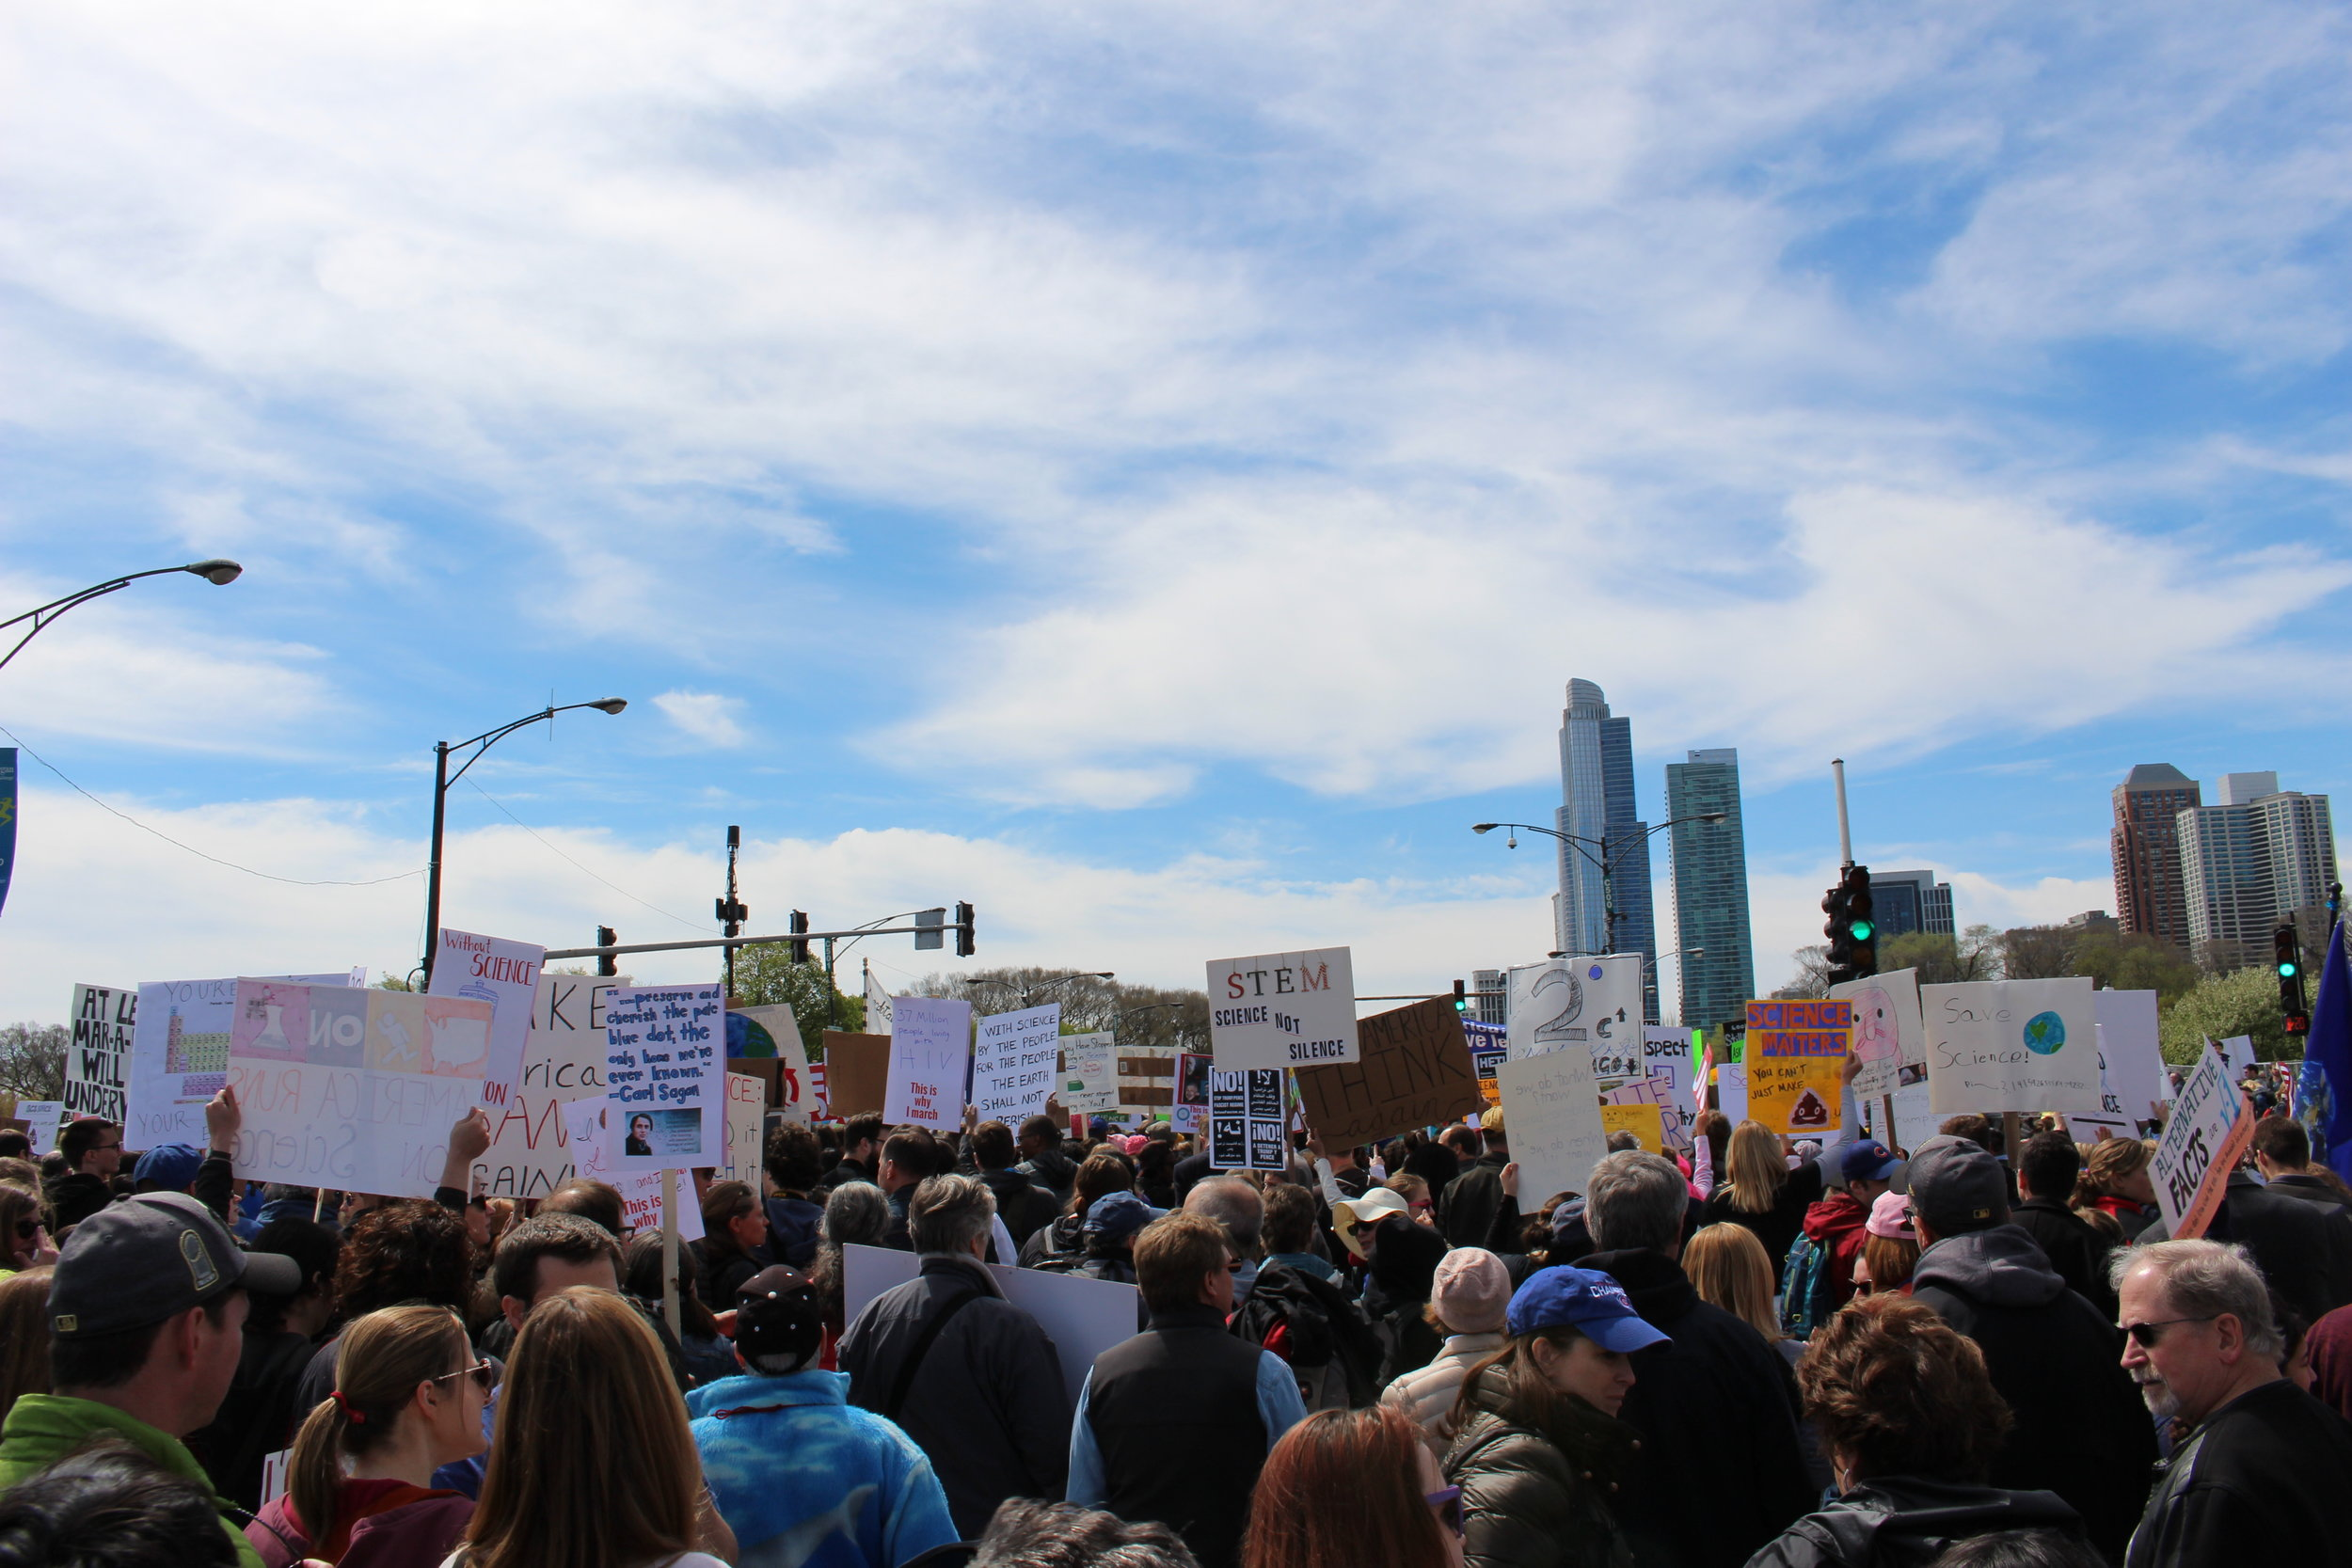 Scientists and science fanatics lined the streets, marching for funding and the truth.    Photo by Audrey Valbuena